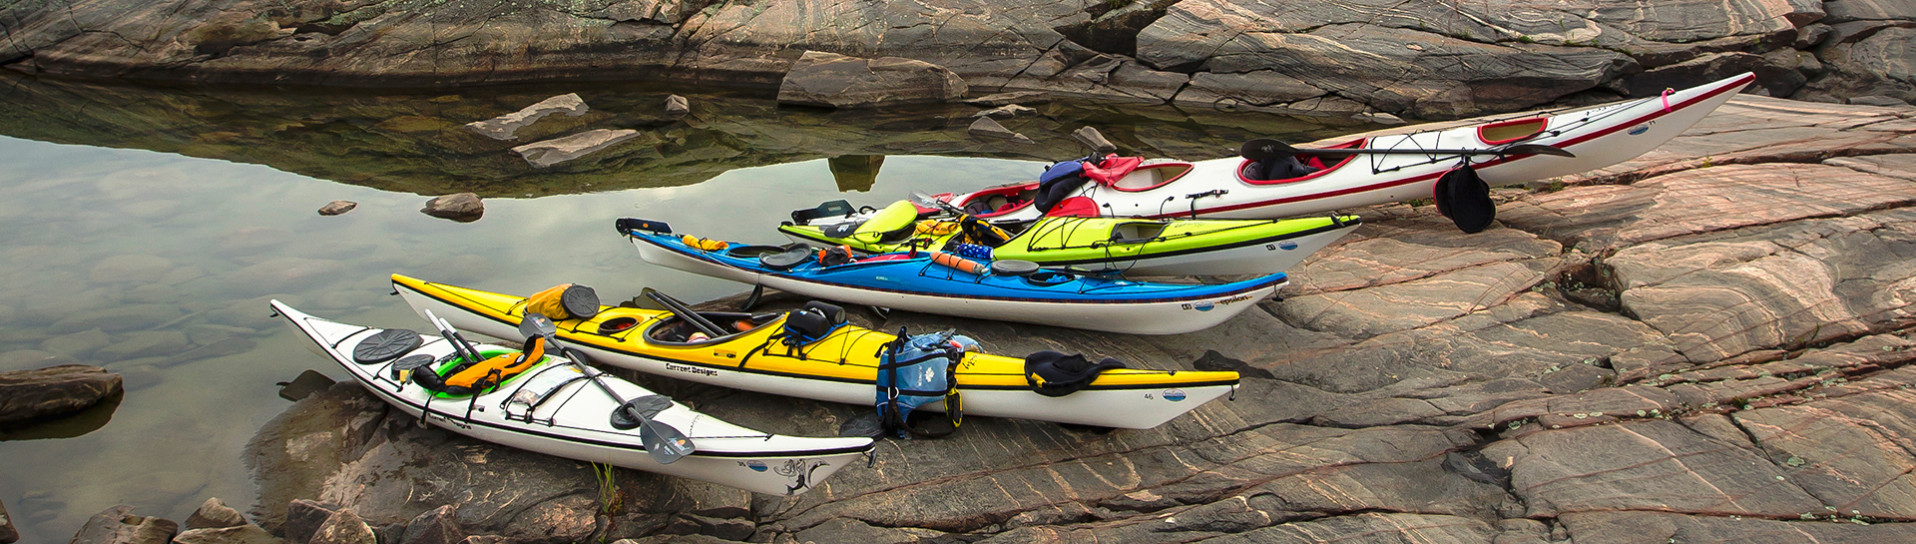 Sea kayaks on rocky shore